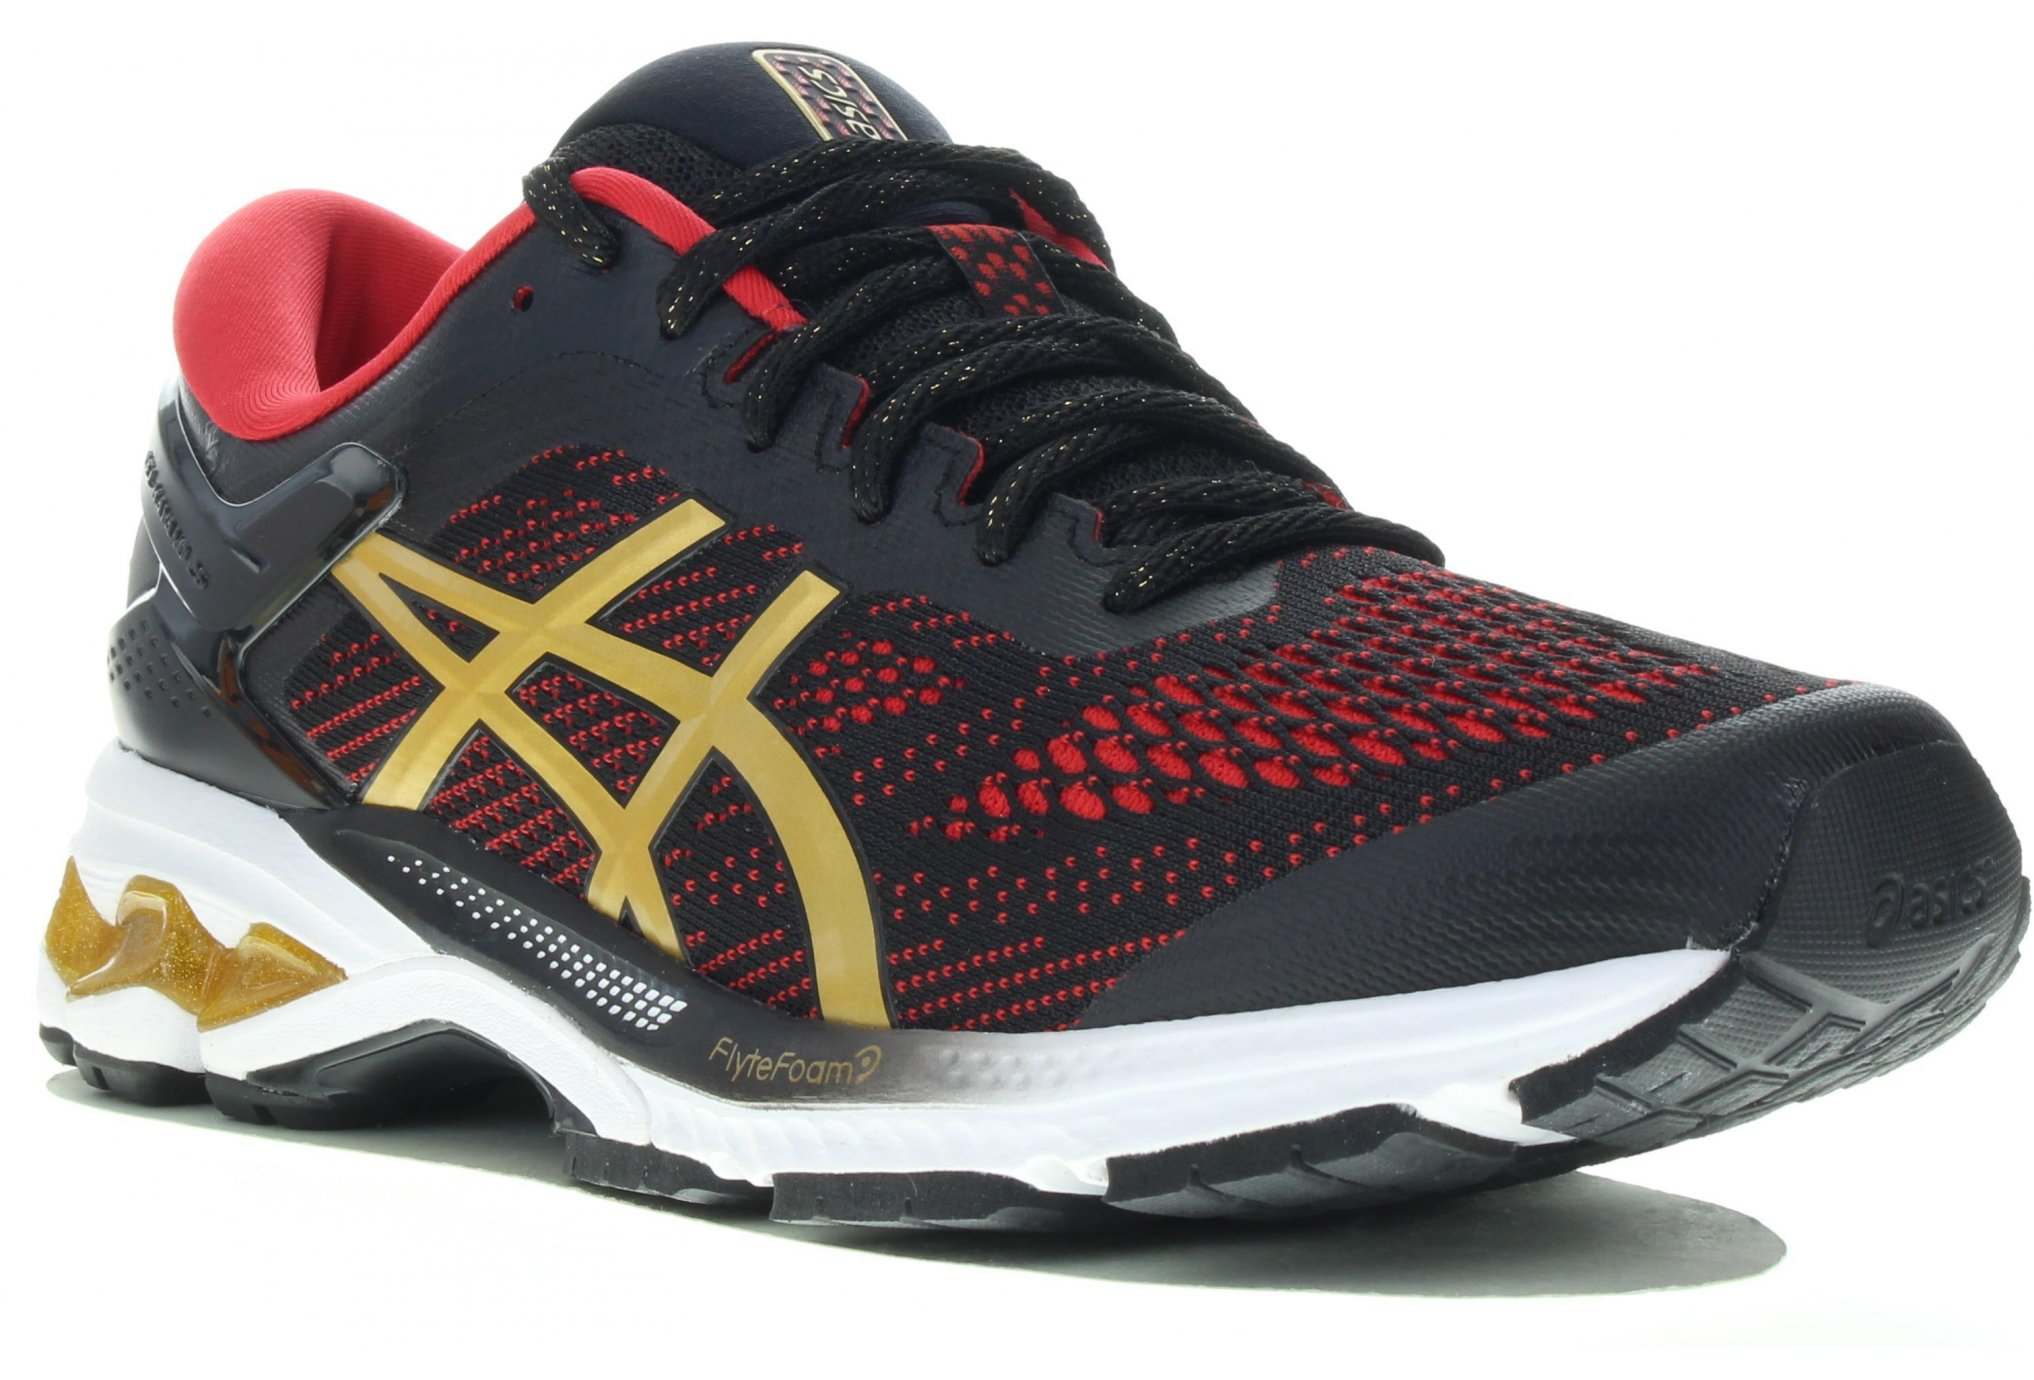 Asics Gel Kayano 26 Good Fortune Chaussures running femme